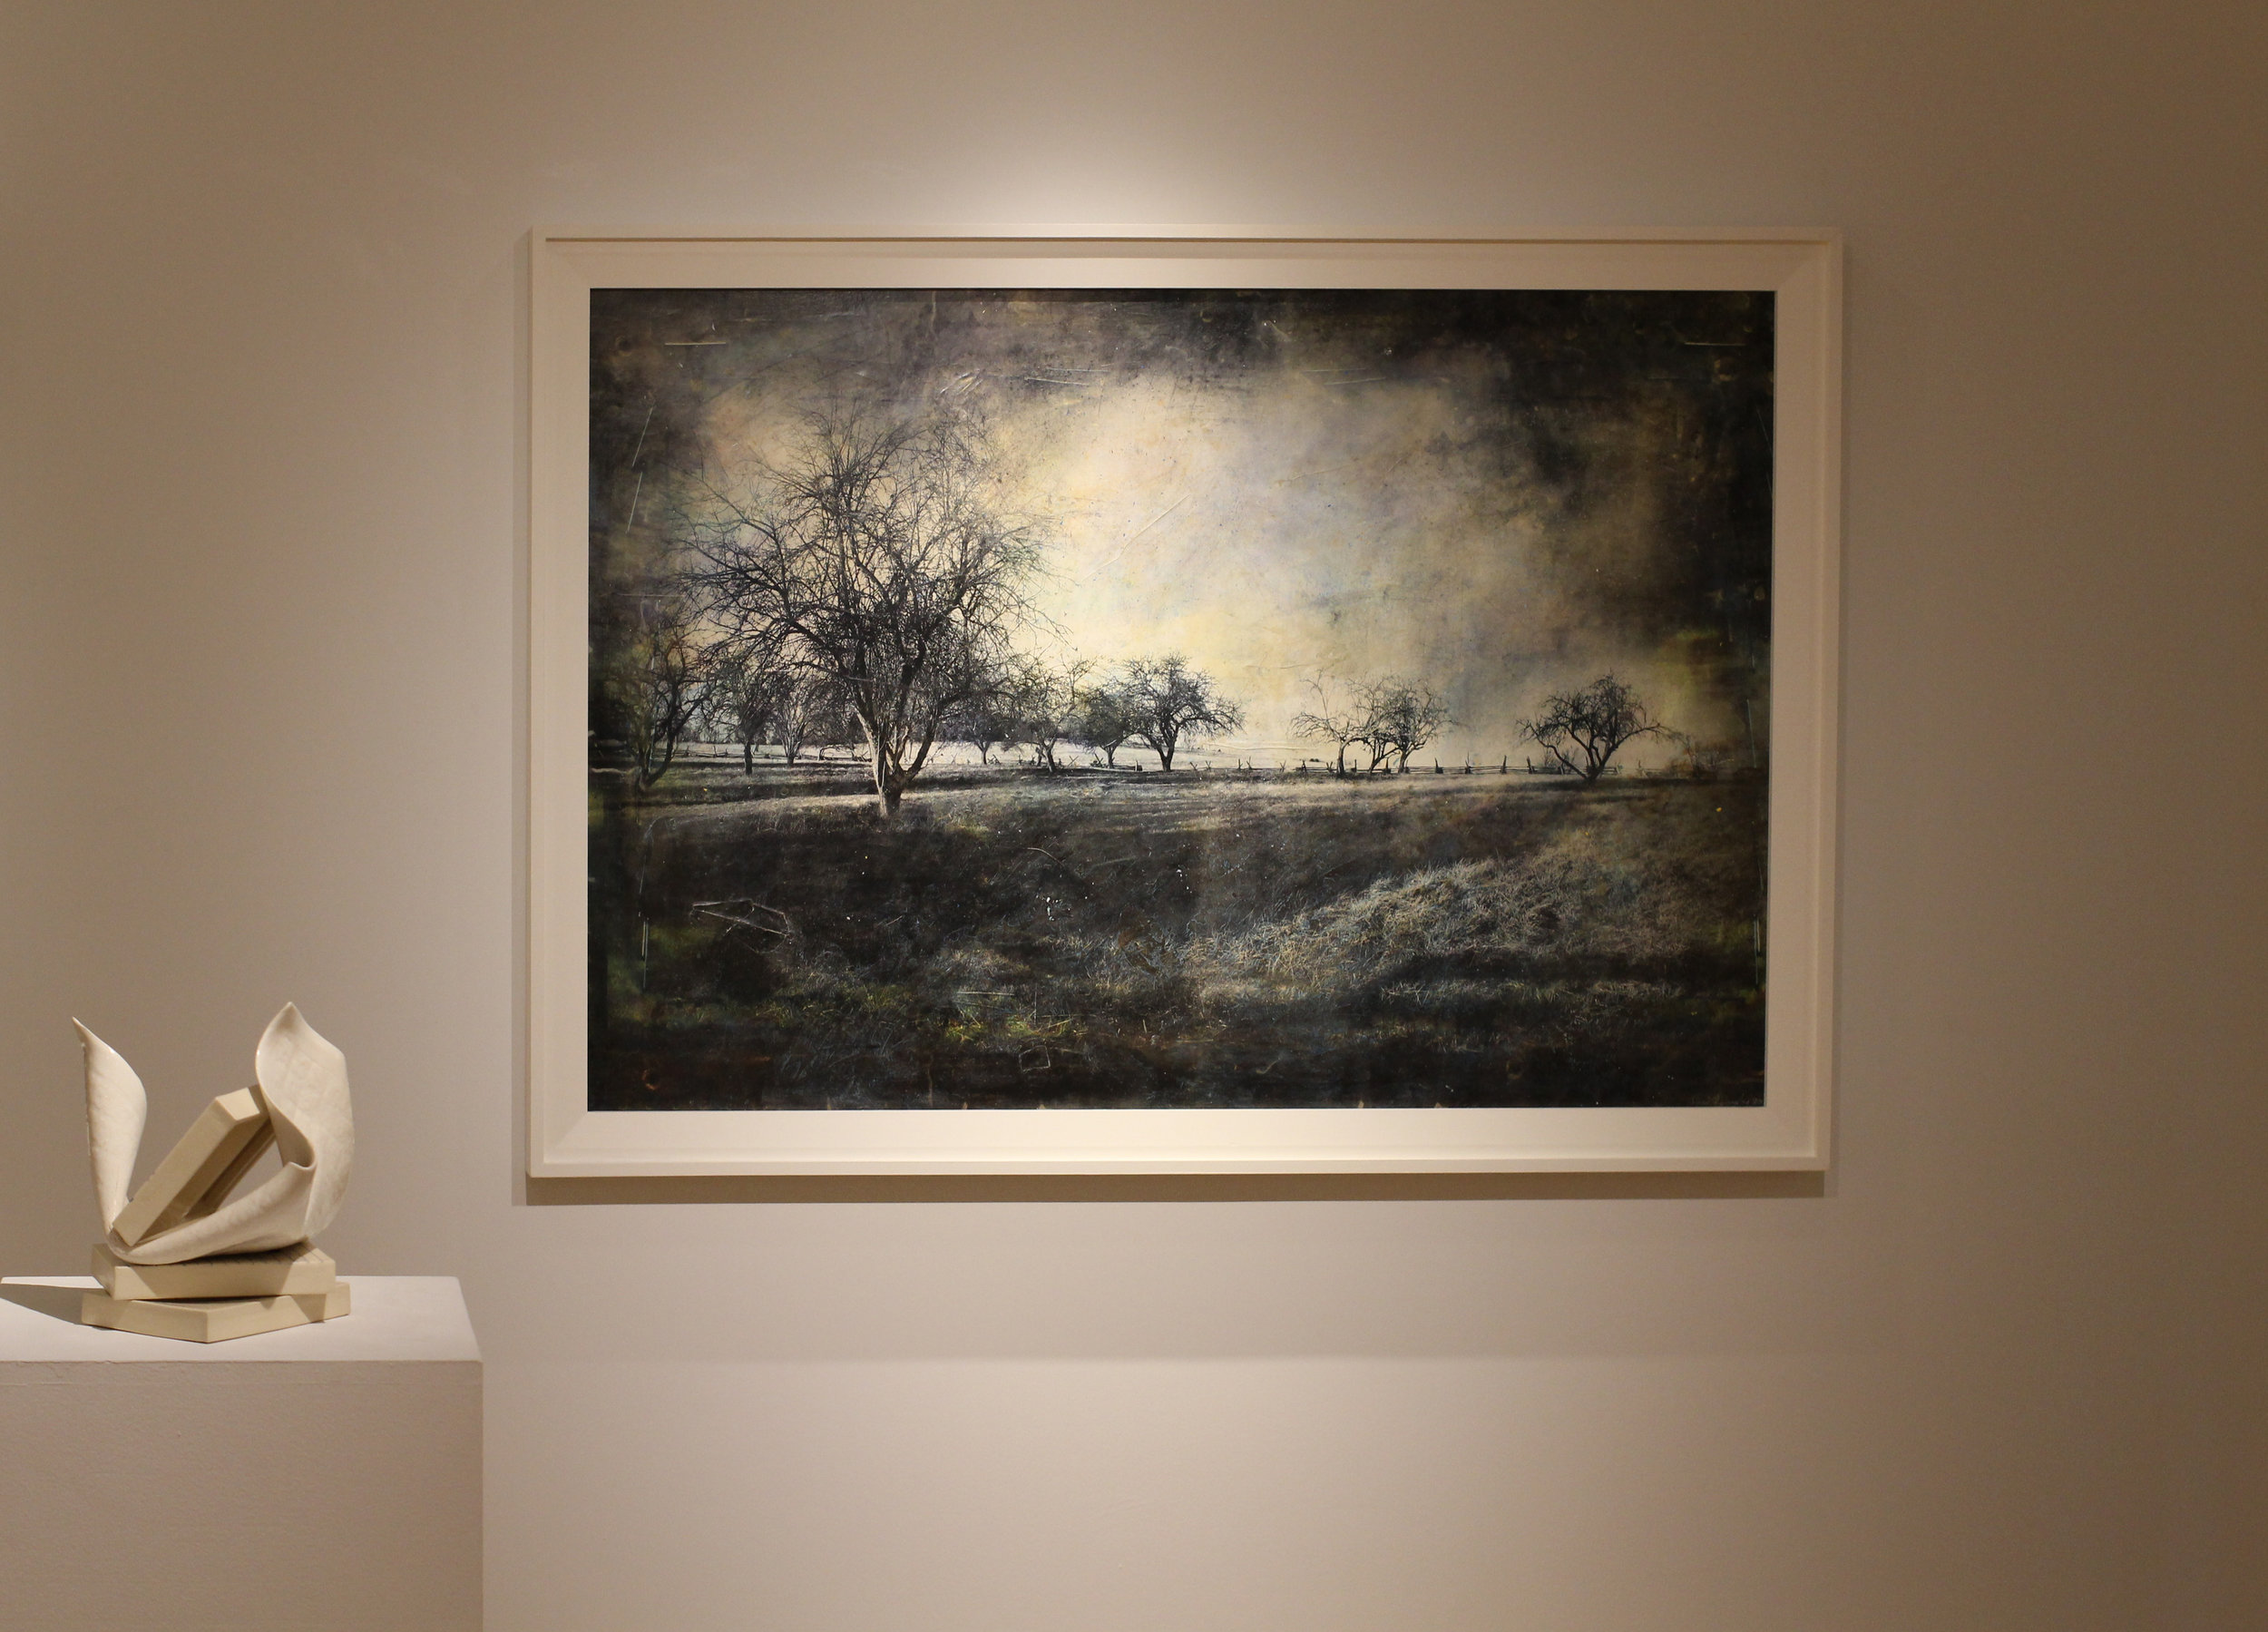 l andscape At New Market Battlefield  Angie Newman Johnson Gallery 2014